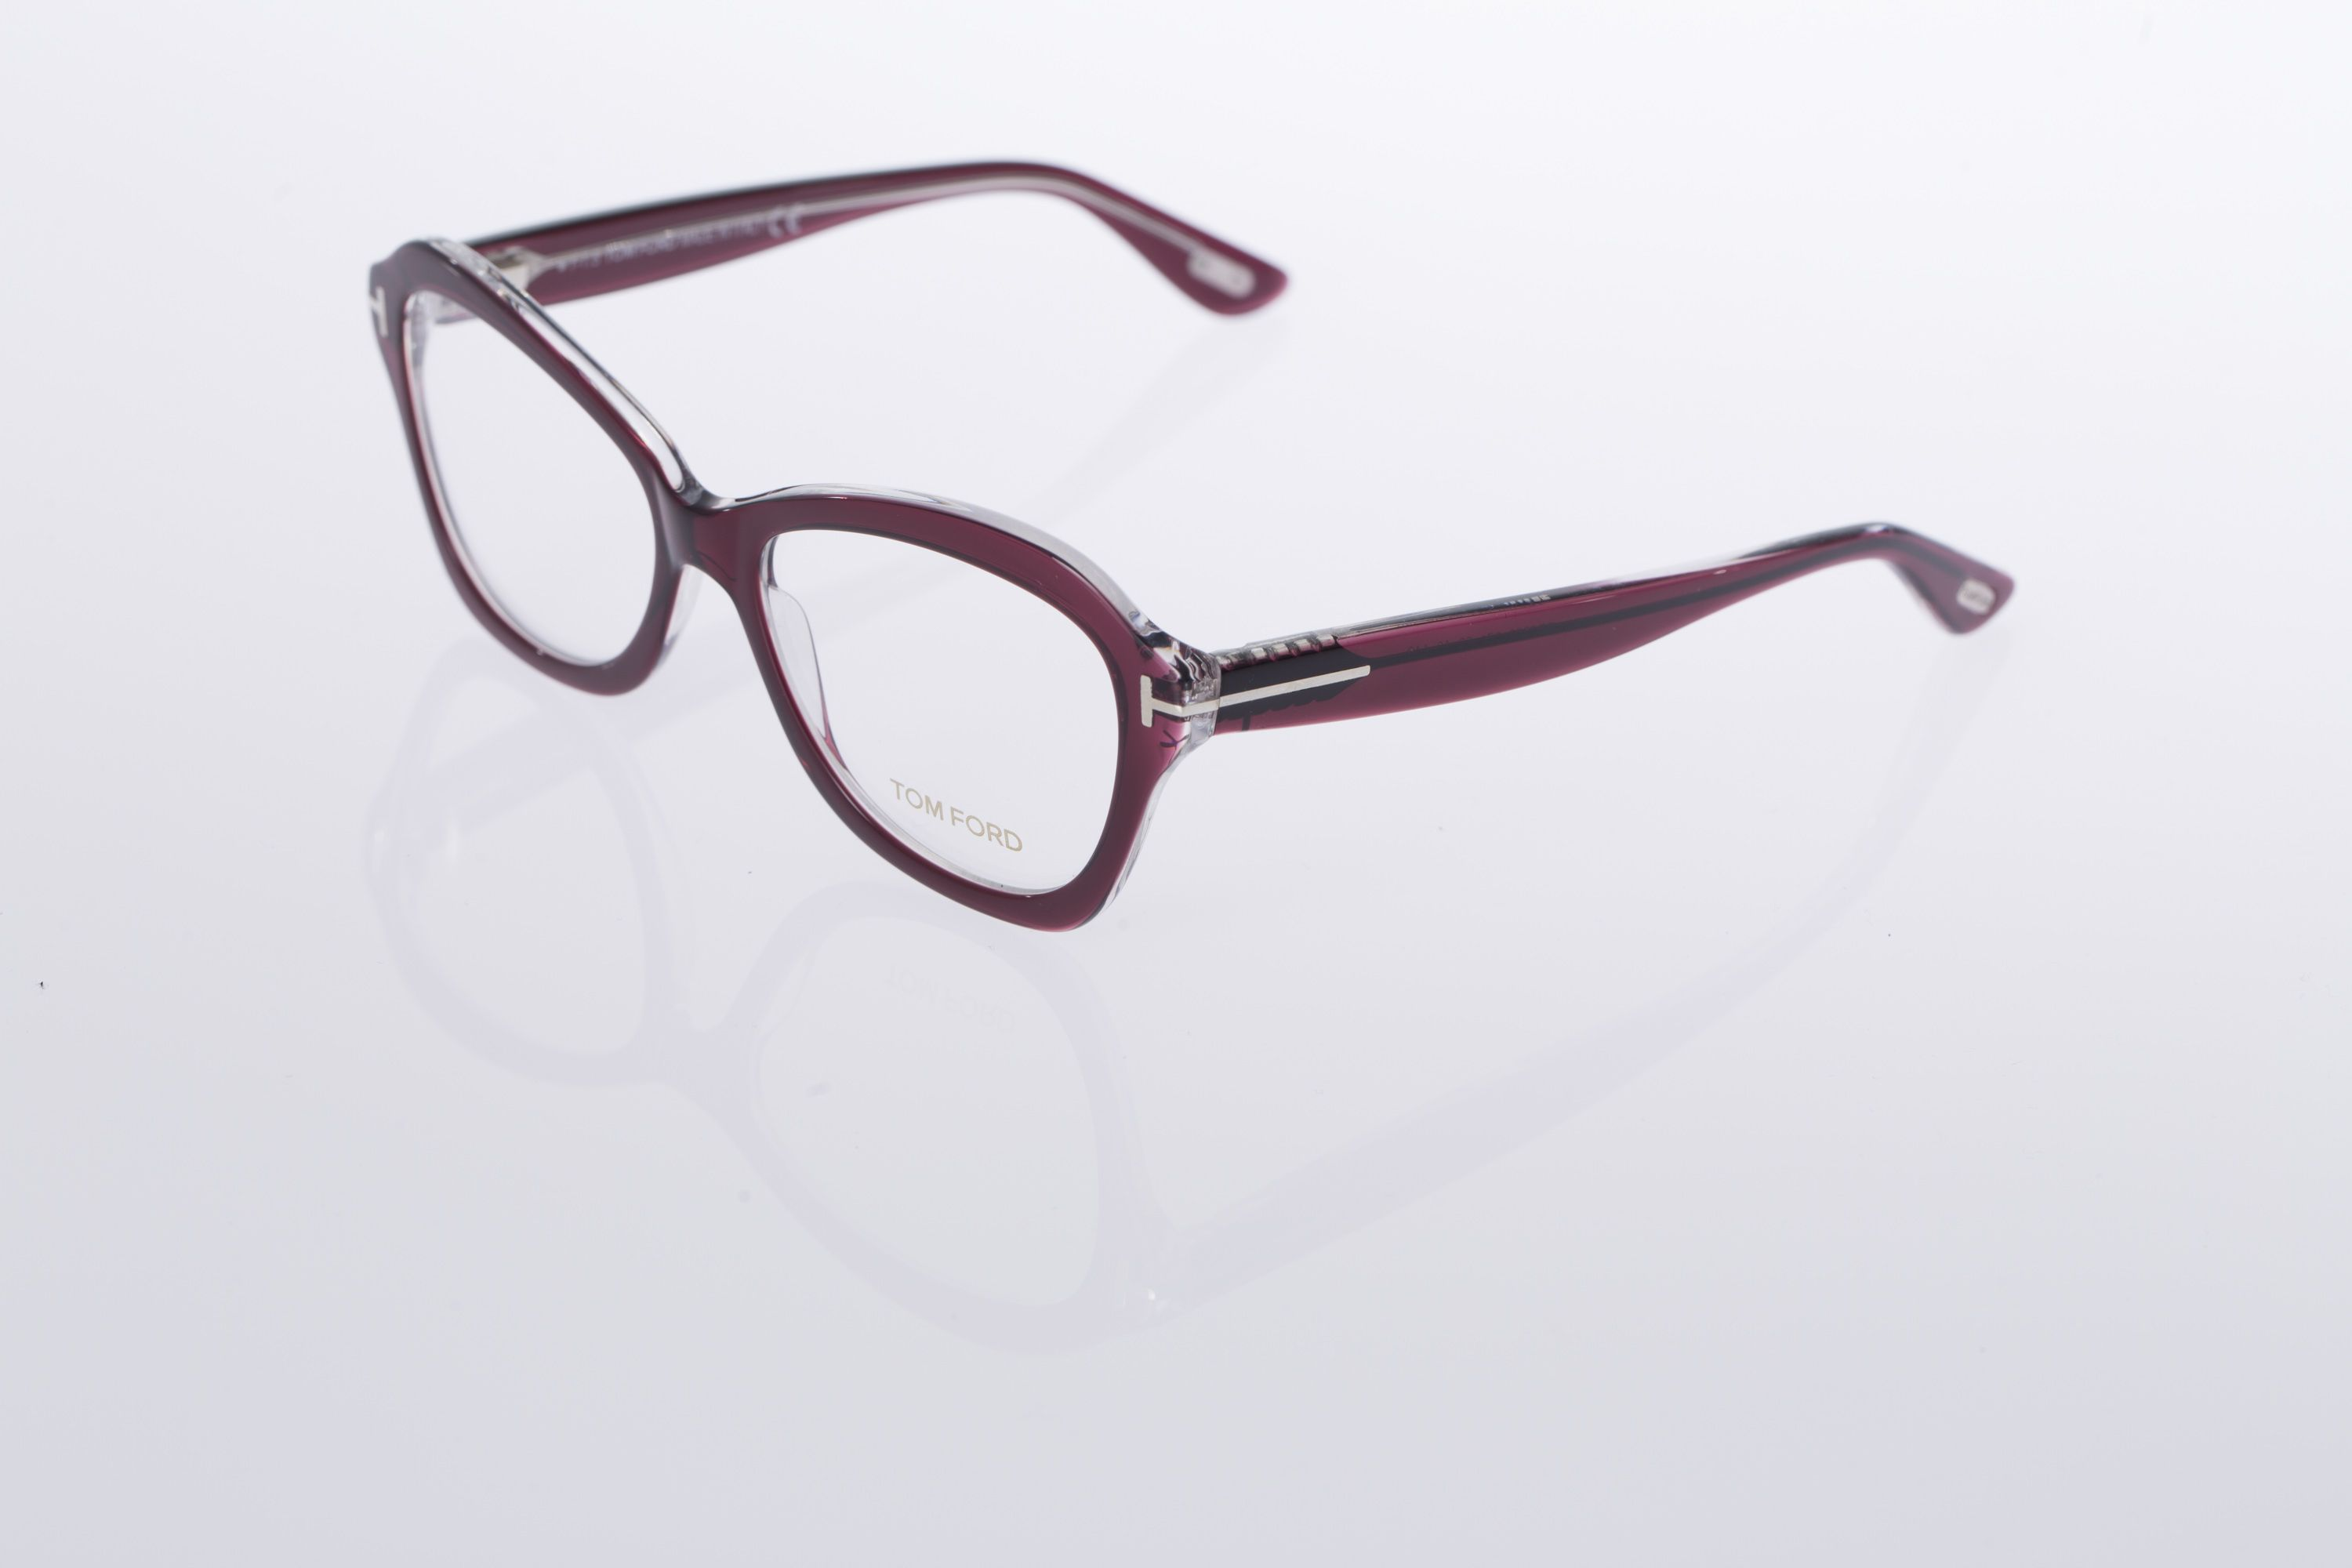 frames today free ford shoes cat black product eyeglasses overstock tom shipping eye clothing eyeglass